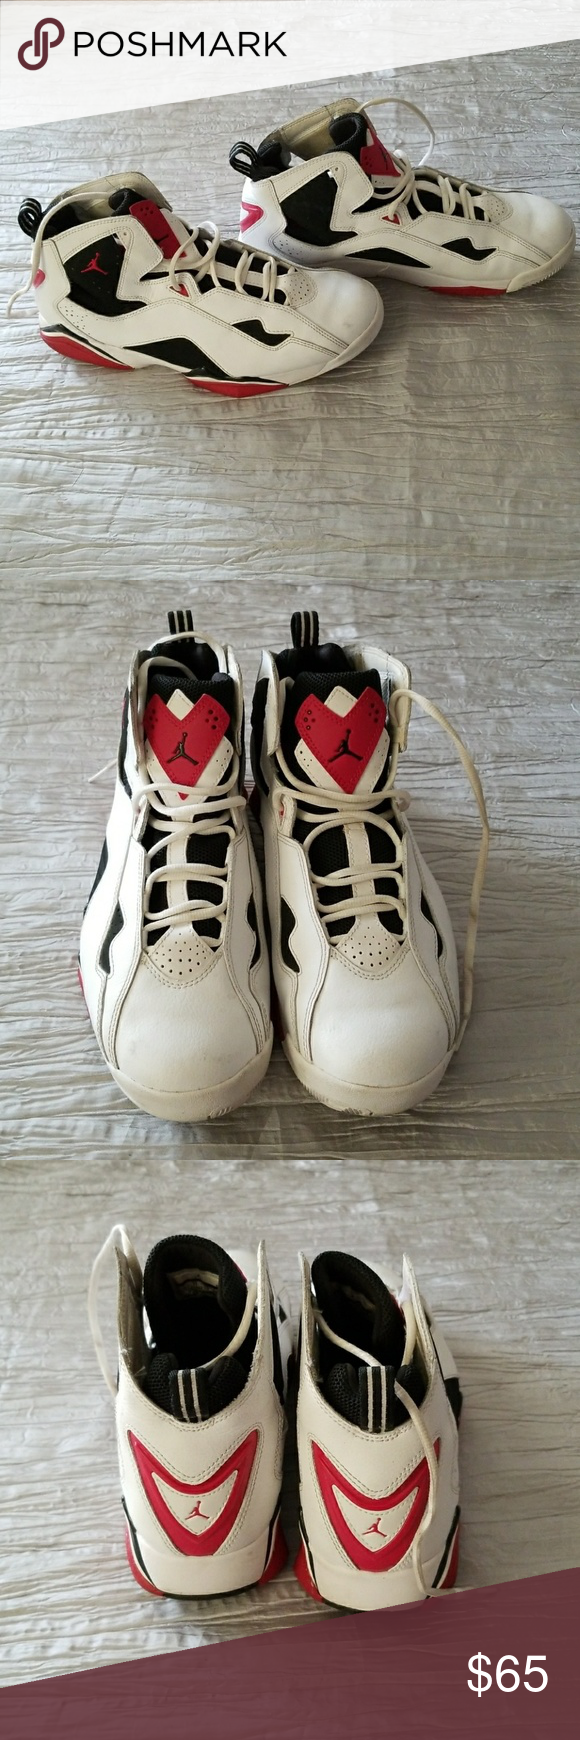 3b1f2746490f ... discount code for nike air jordan true flight mens basketball shoes  preowned still in good condition